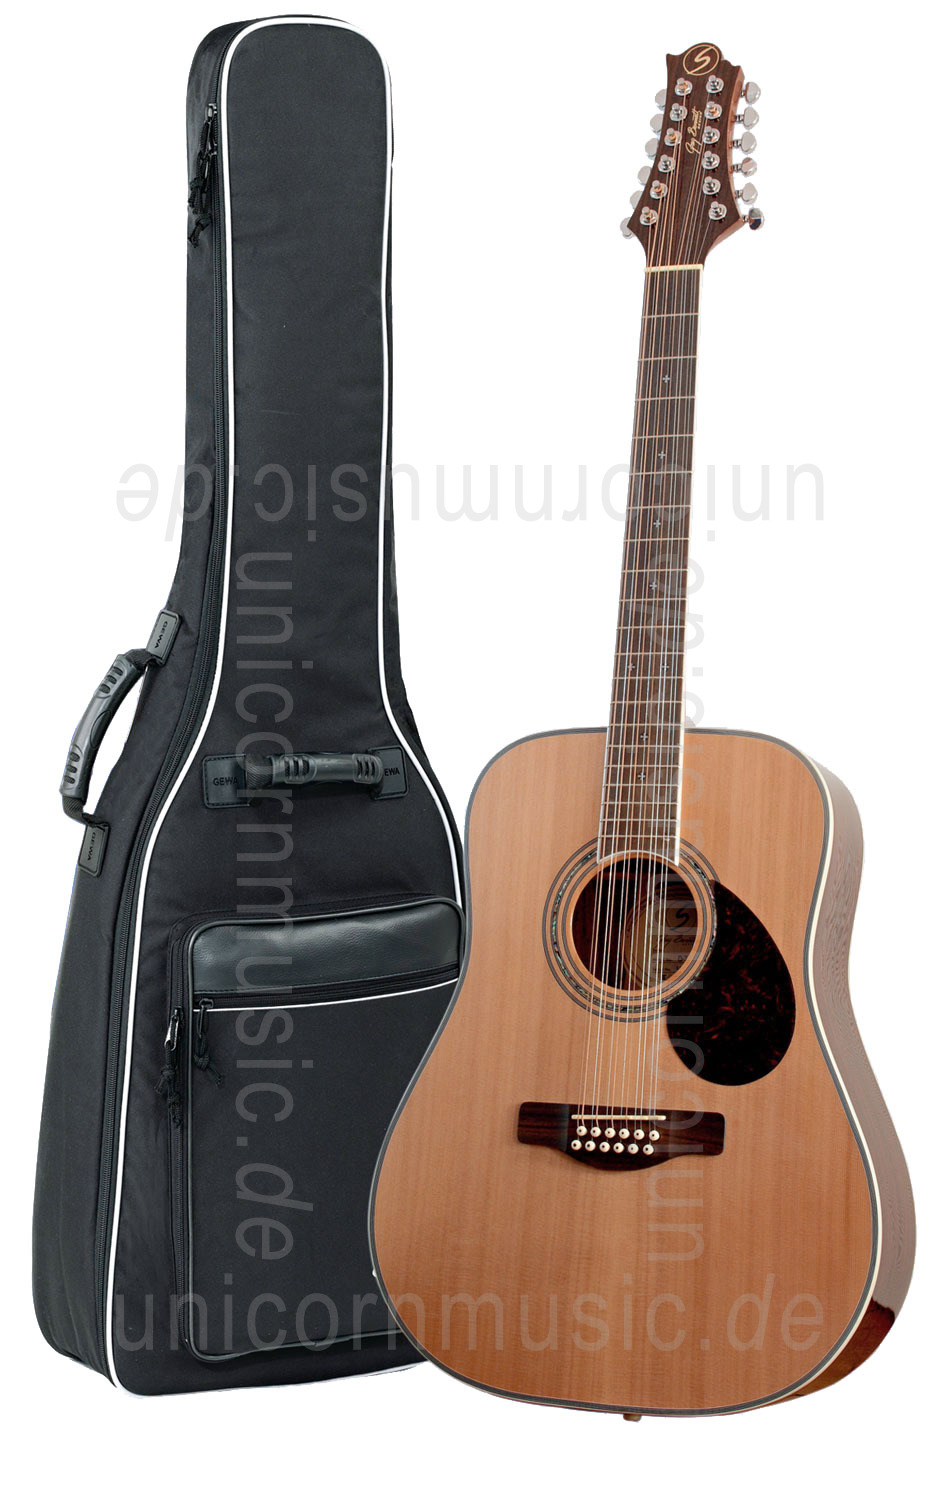 to article description / price Acoustic Guitar GREG BENNETT (SAMICK) D7/12 BEAUMONT - Dreadnought - 12 String - solid cedar top